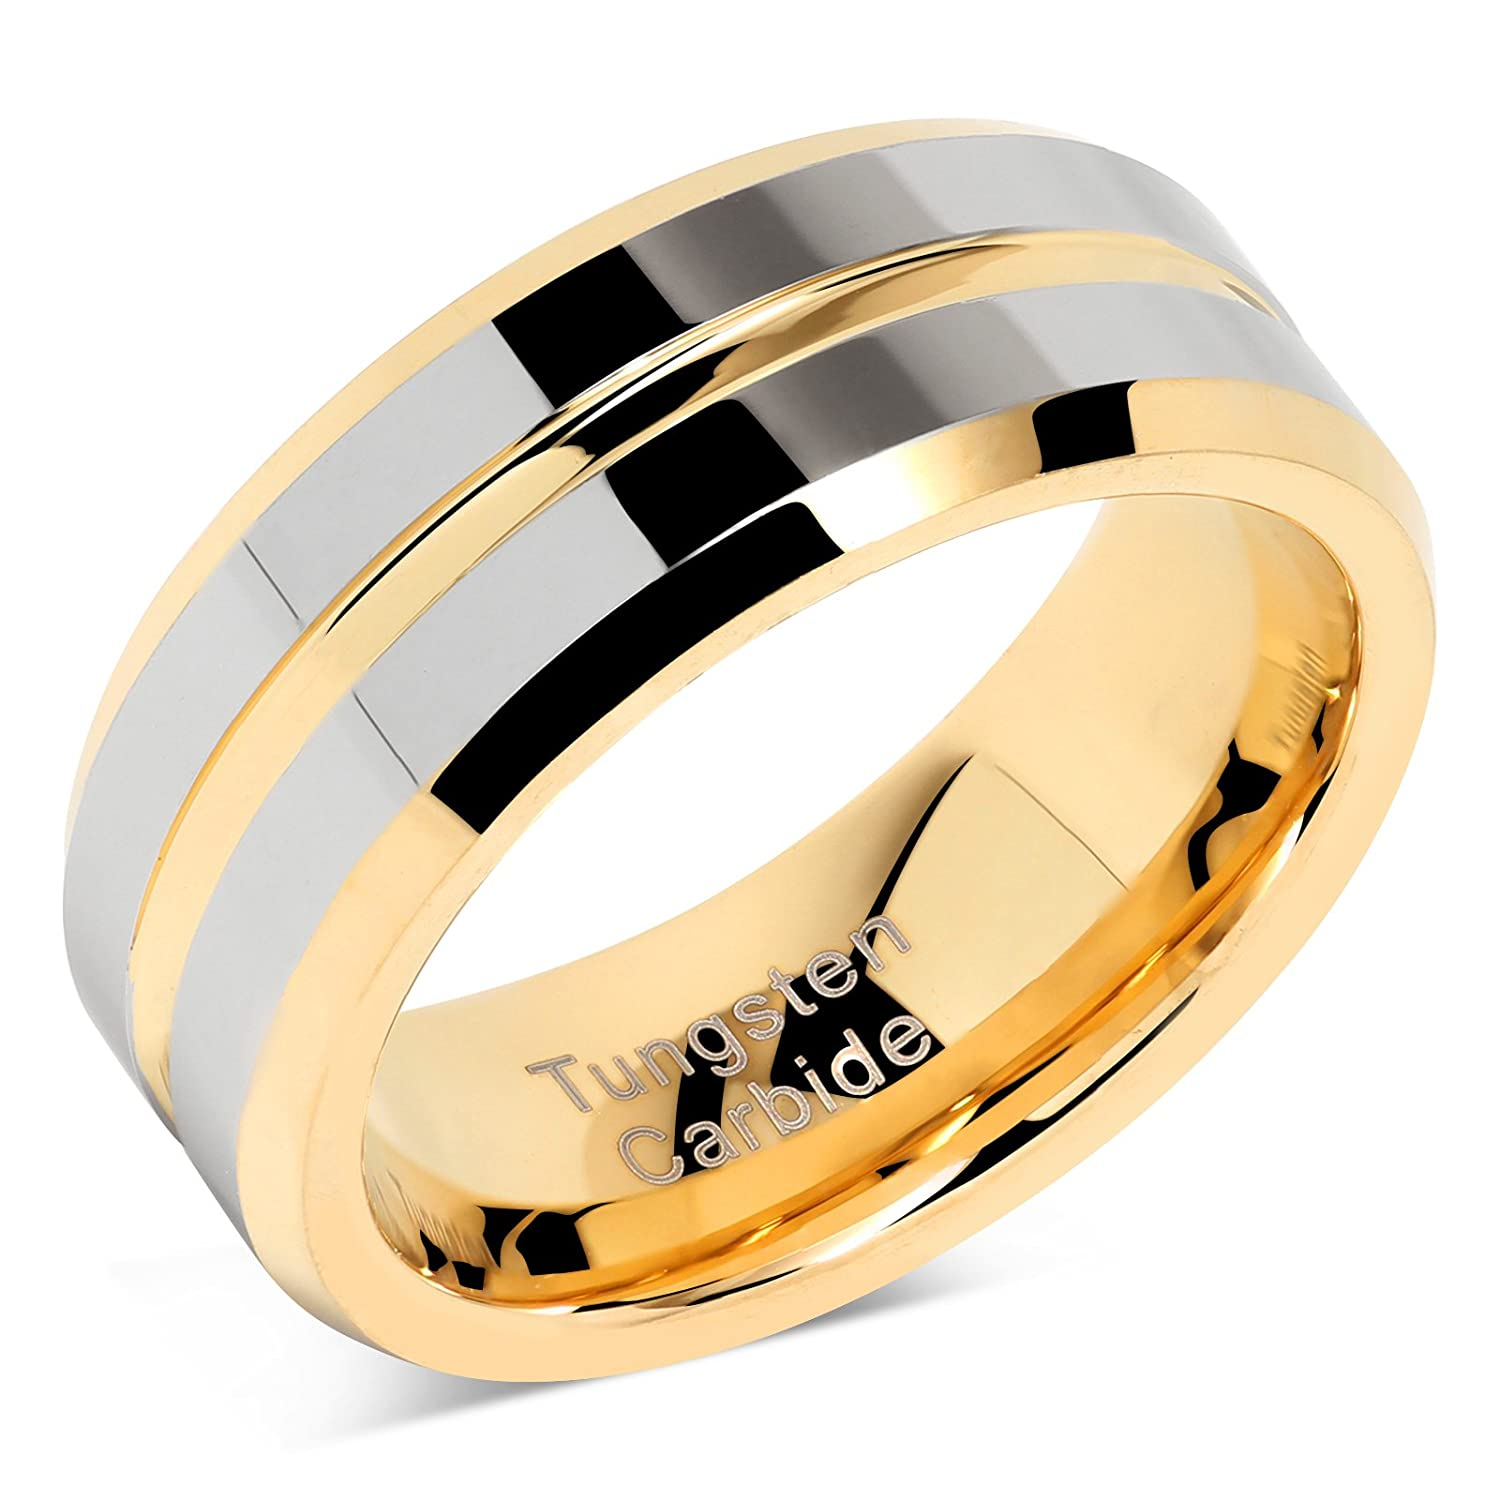 100S JEWELRY Tungsten Rings for Mens Wedding Bands Gold Silver Two Tone Grooved Center Line Size 8-16